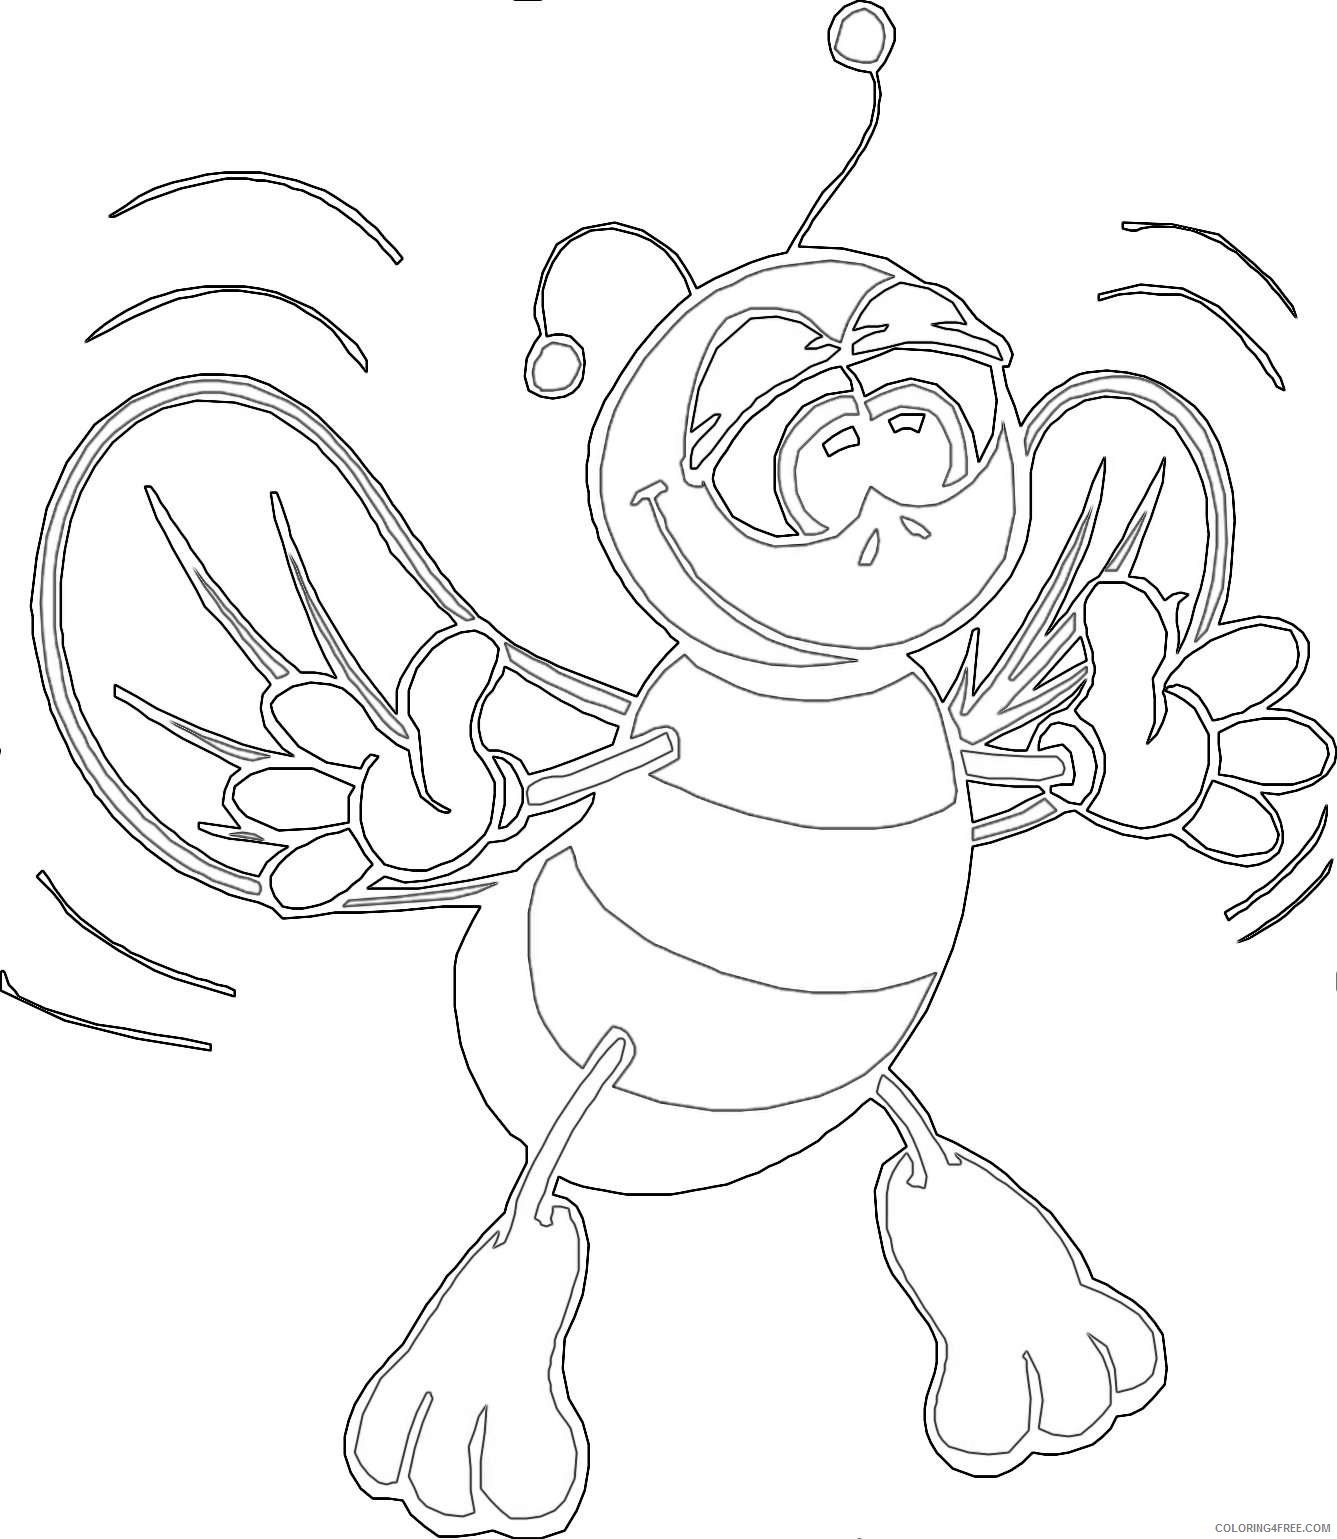 20 of a animated bee that you can download to you DkxTsL coloring